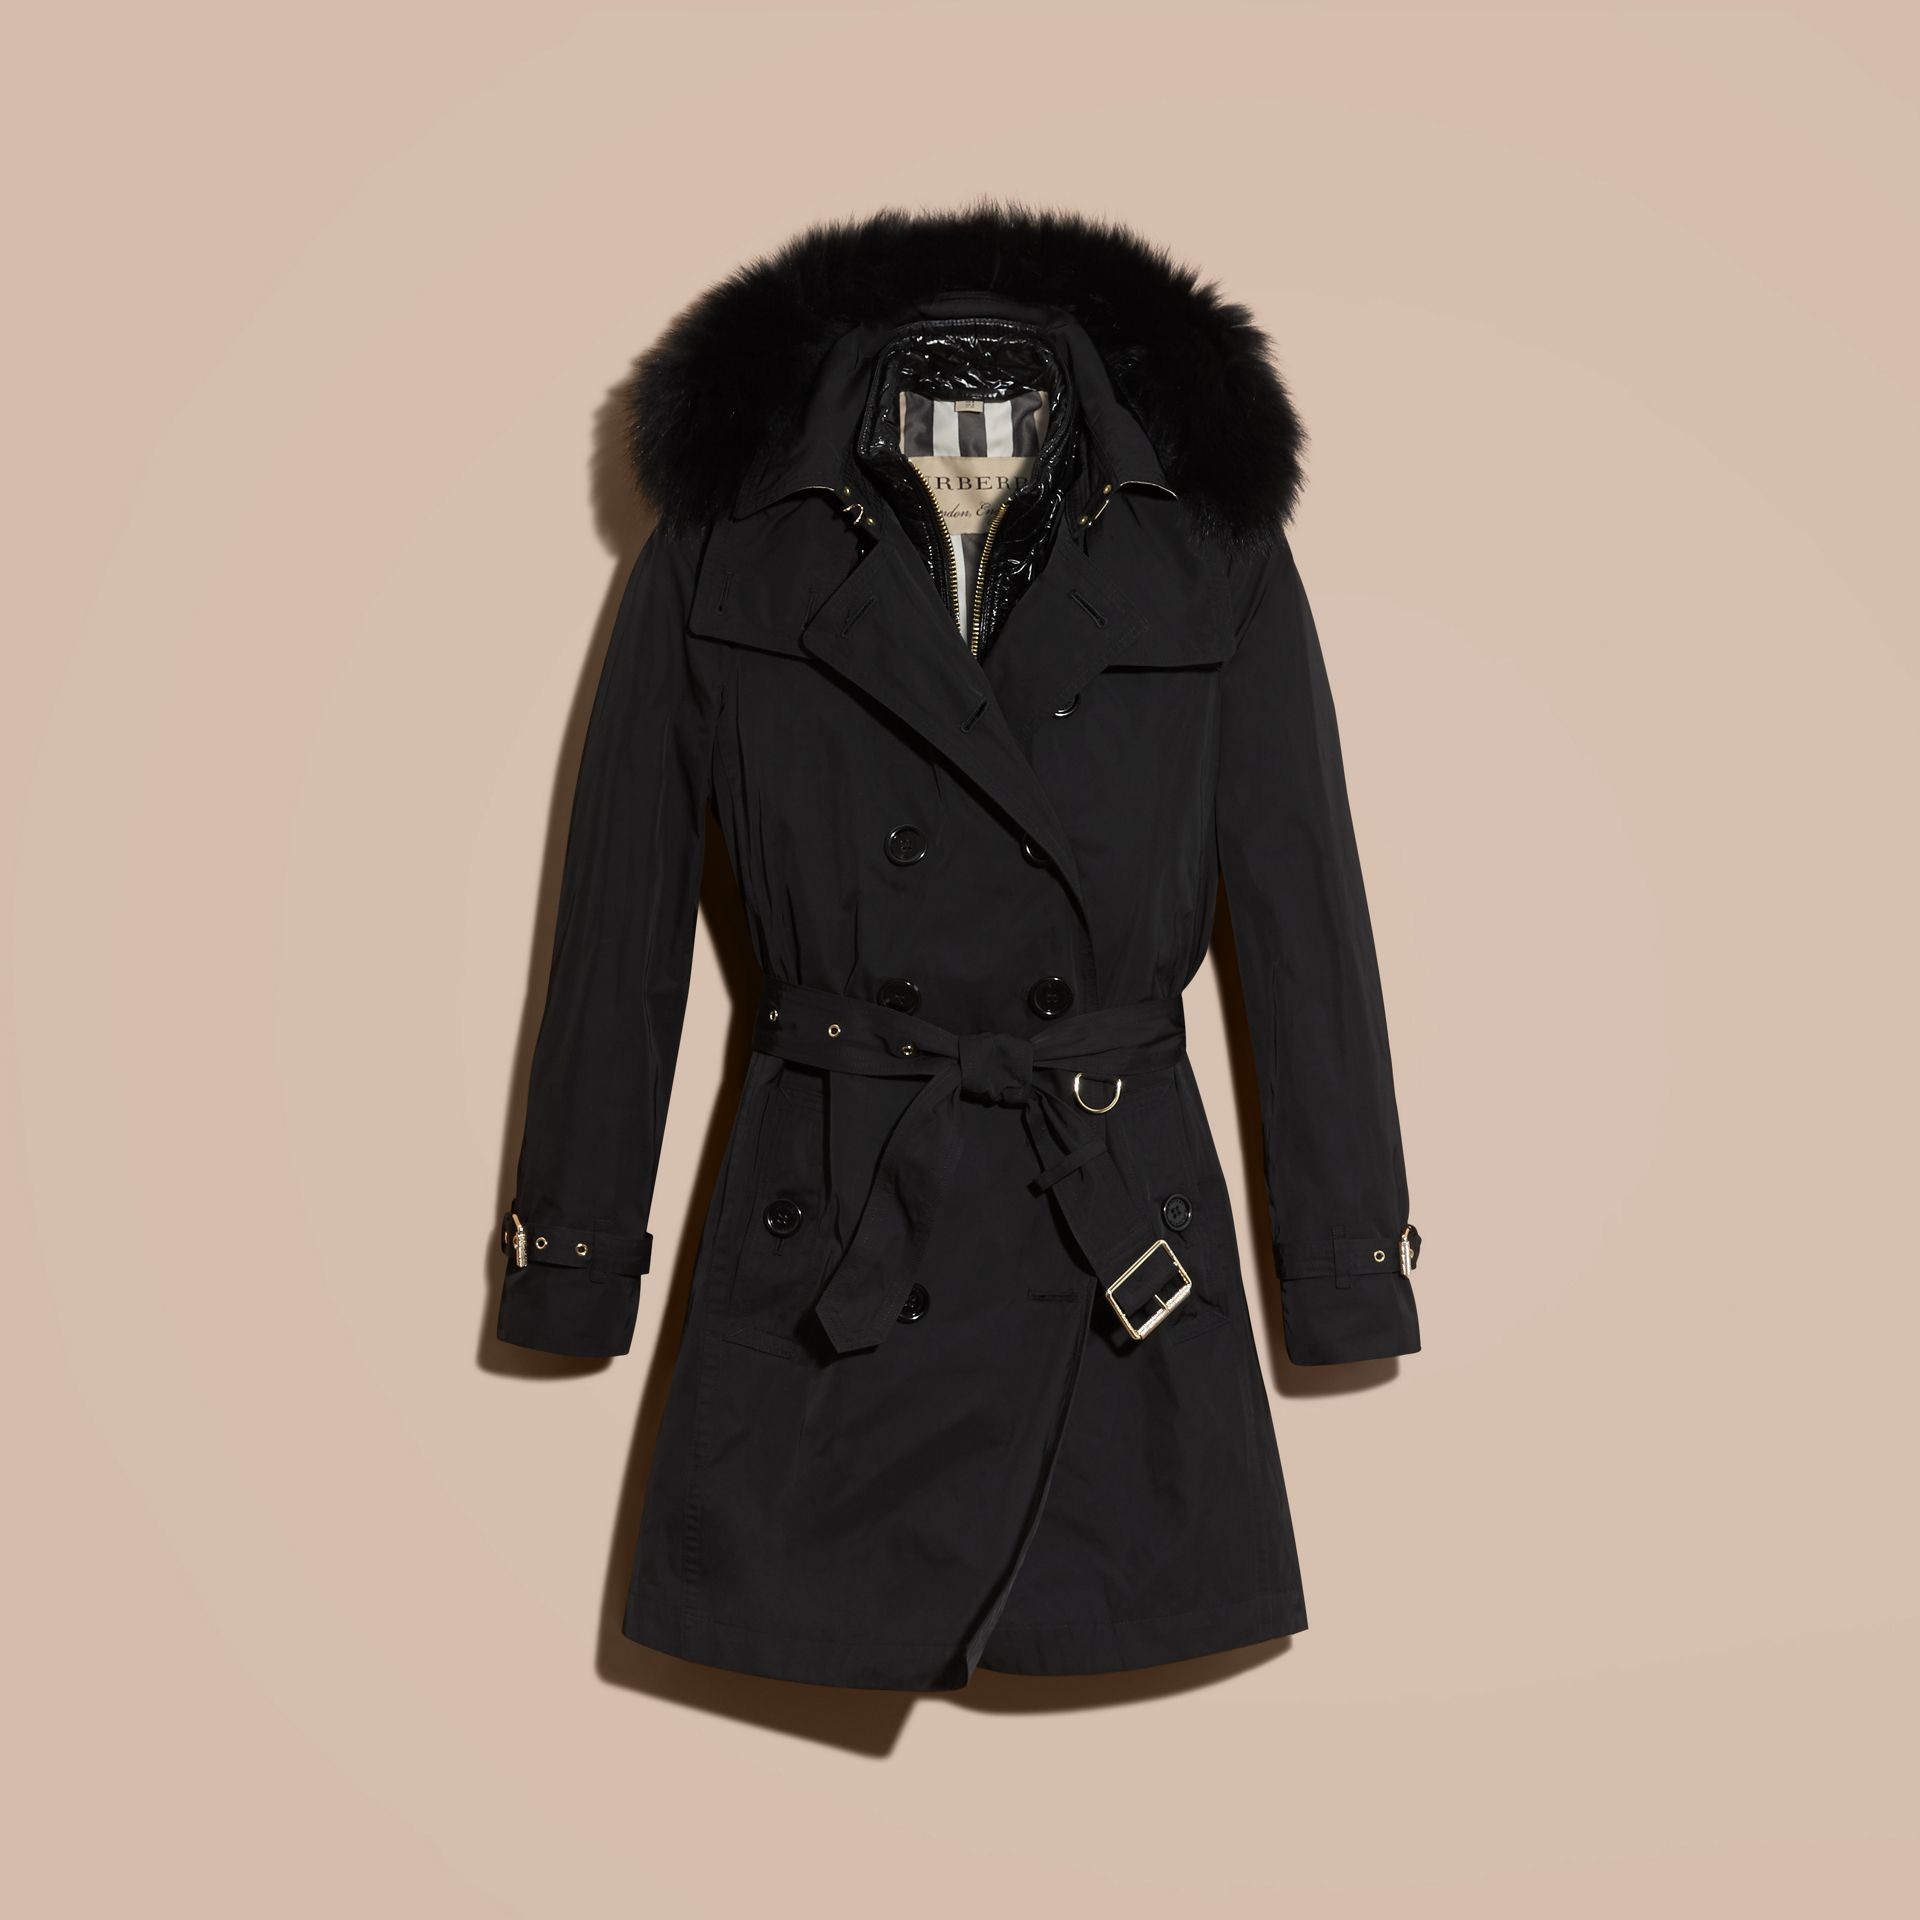 Black Fur-trimmed Hood Trench Coat with Detachable Gilet Black - gallery image 4